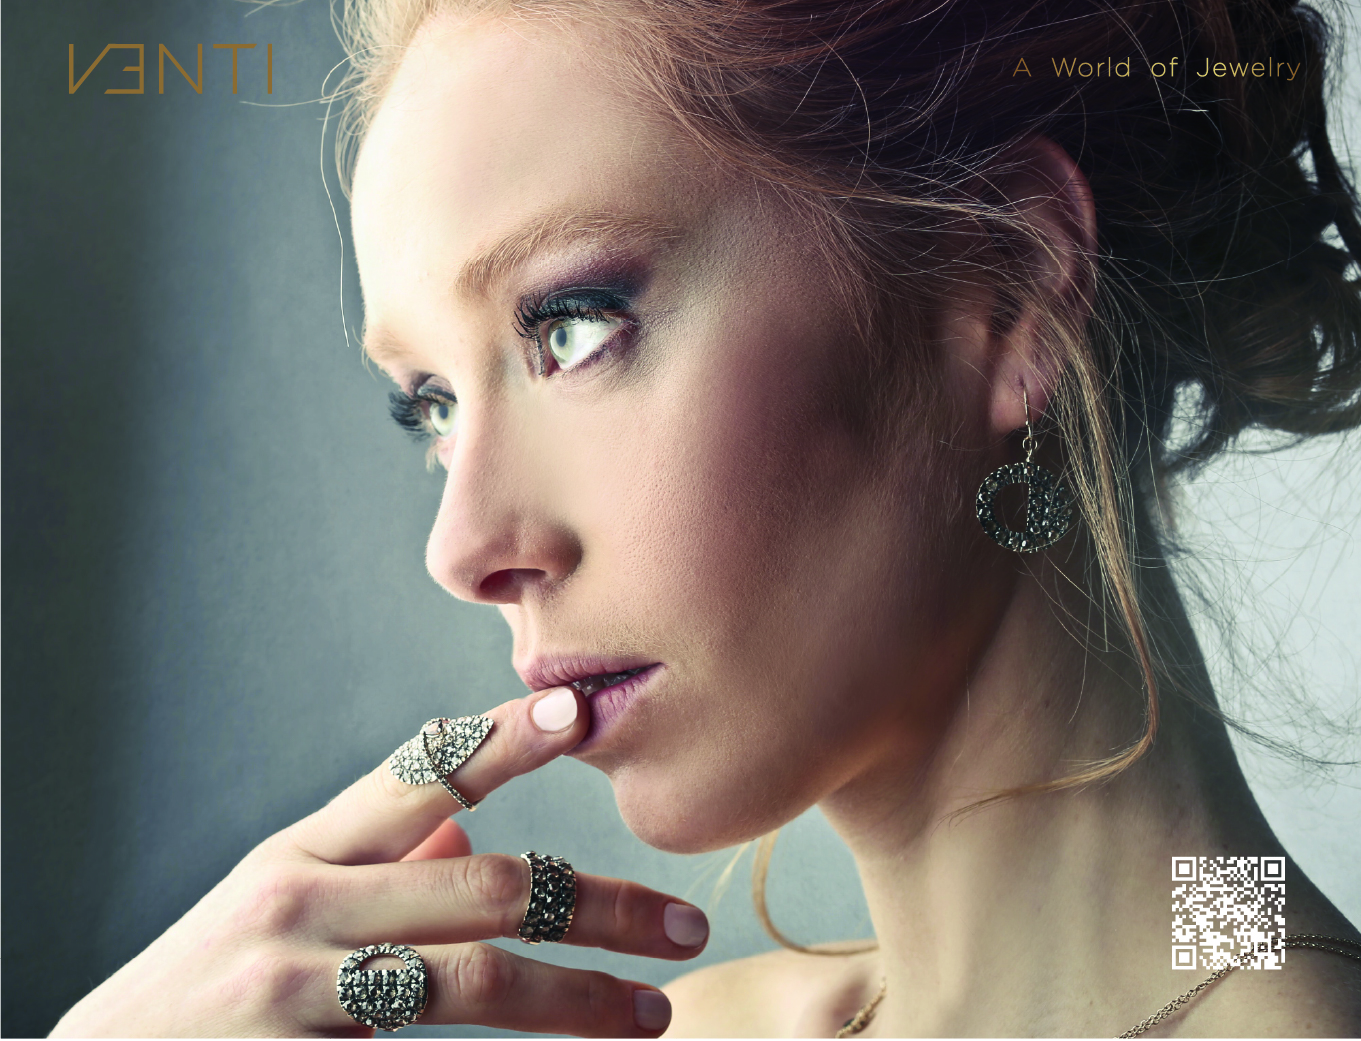 Venti premium women model posing in high-end jewellery for the brand essence